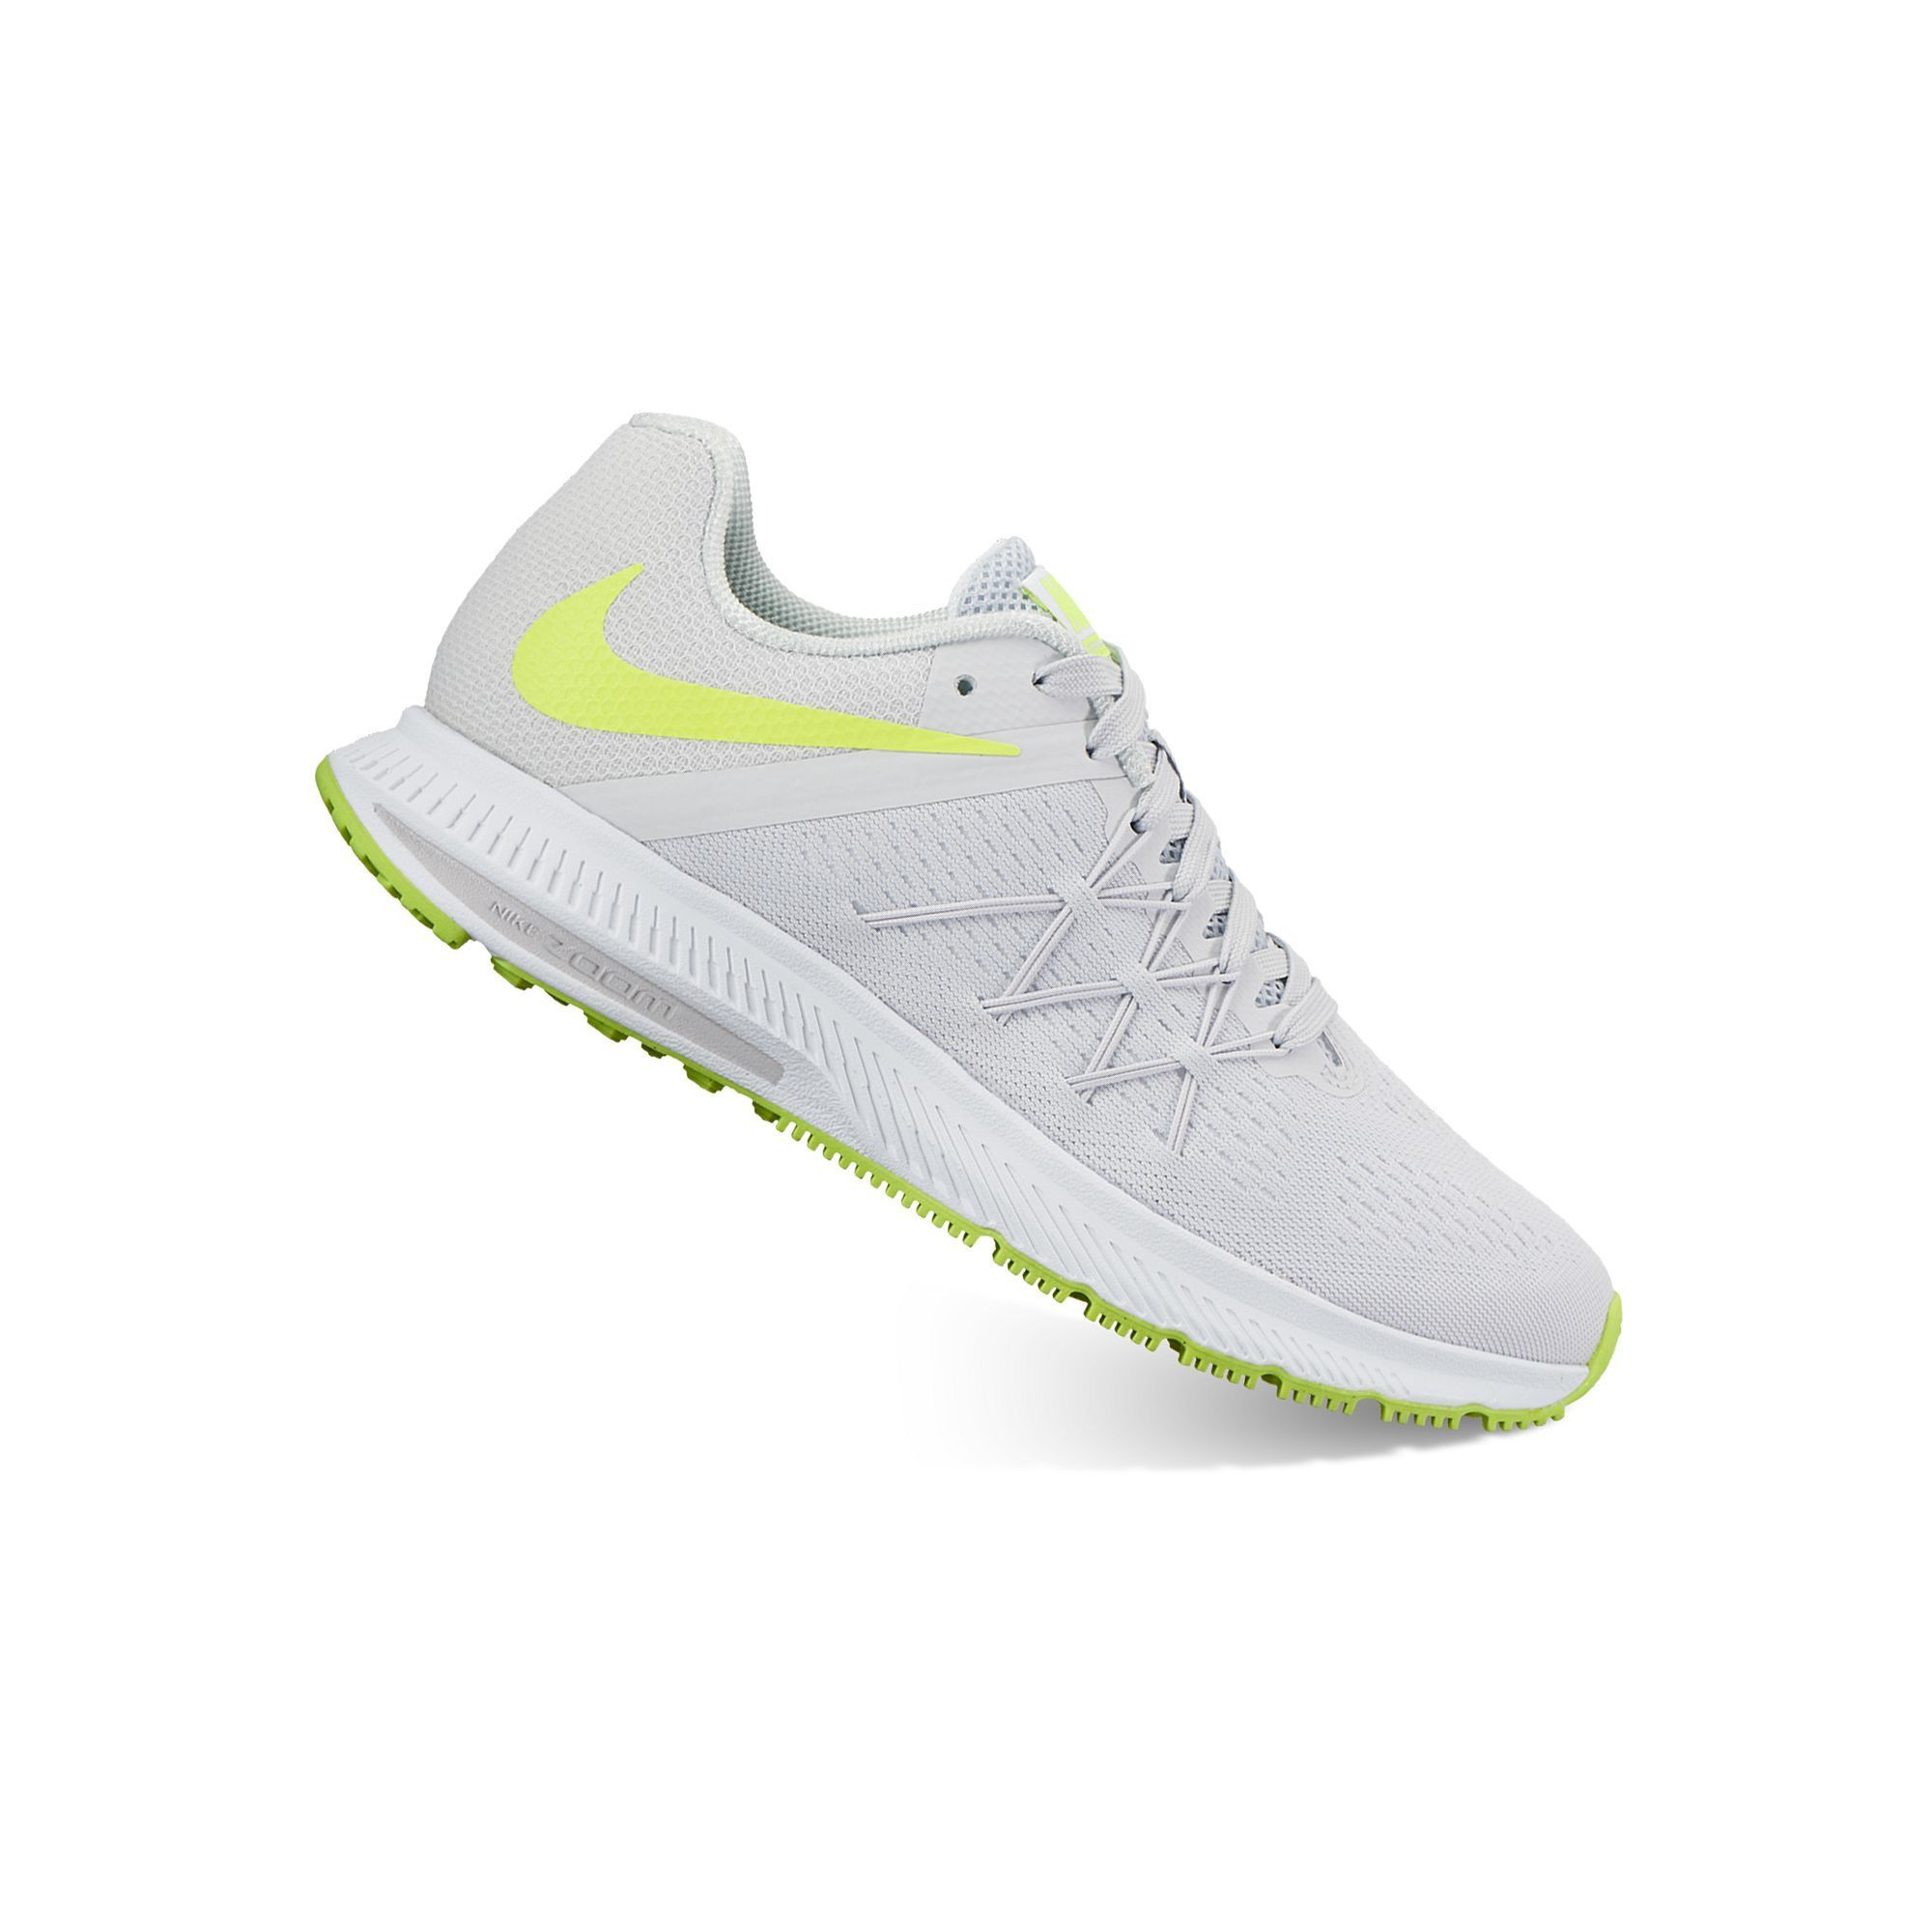 size 40 cc7b0 c61b3 Nike Zoom Winflo 3 Women's Running Shoes | Products ...